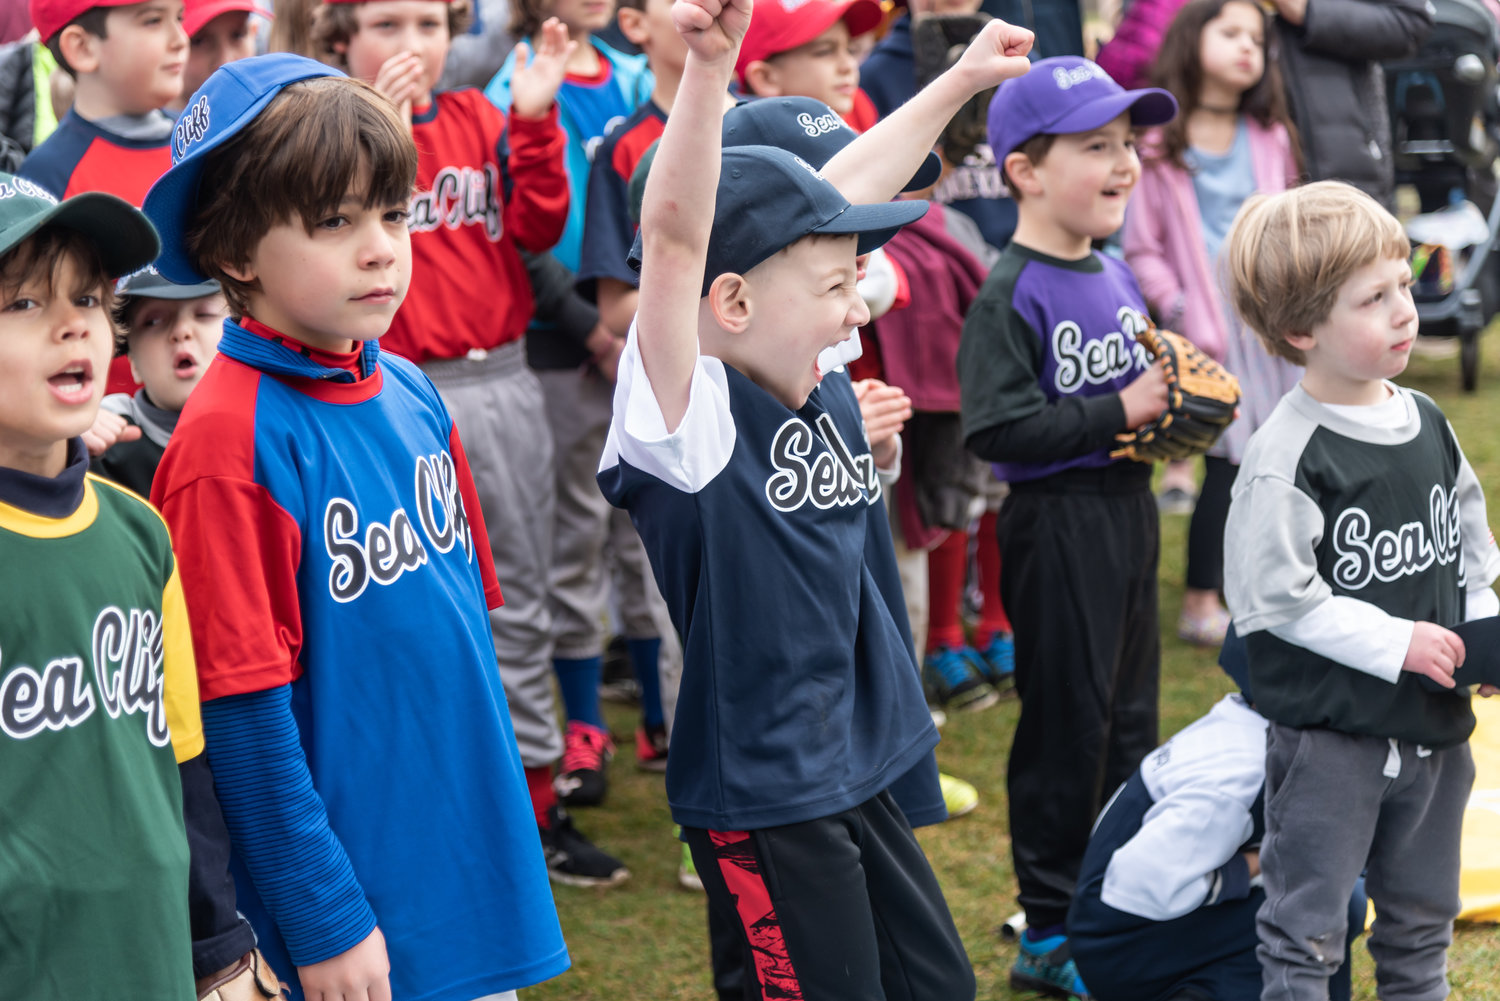 Pint-sized slugger Cassius Williams couldn't contain his excitement at Sea Cliff Little League's opening day ceremonies in Clifton Park last Saturday.